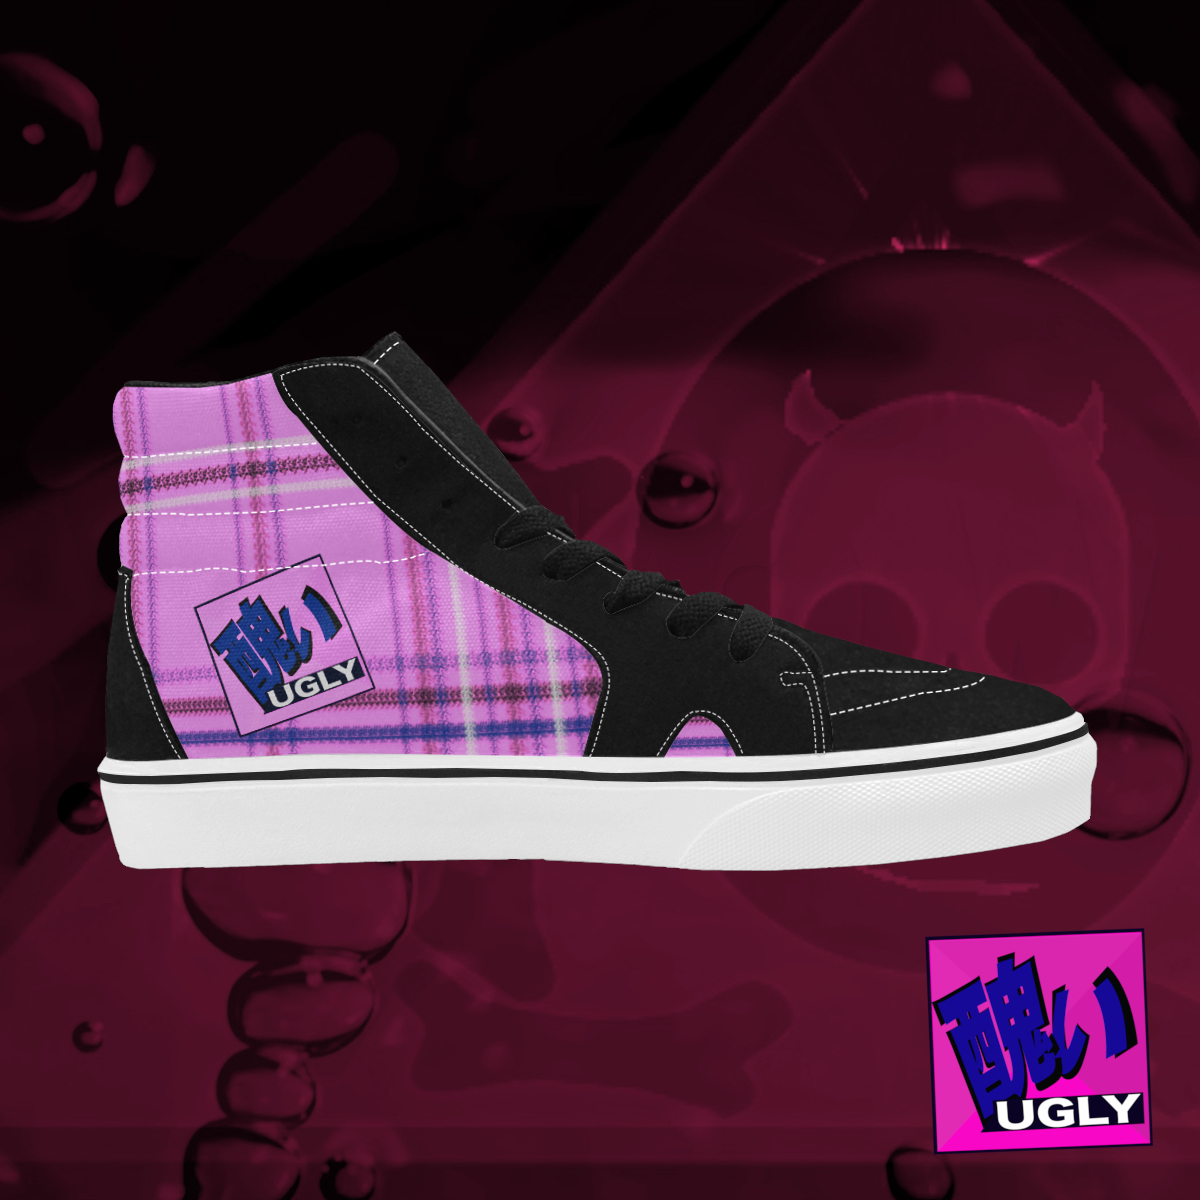 UGLY tartan high top skate shoes The Lowest of Low Bubblegum